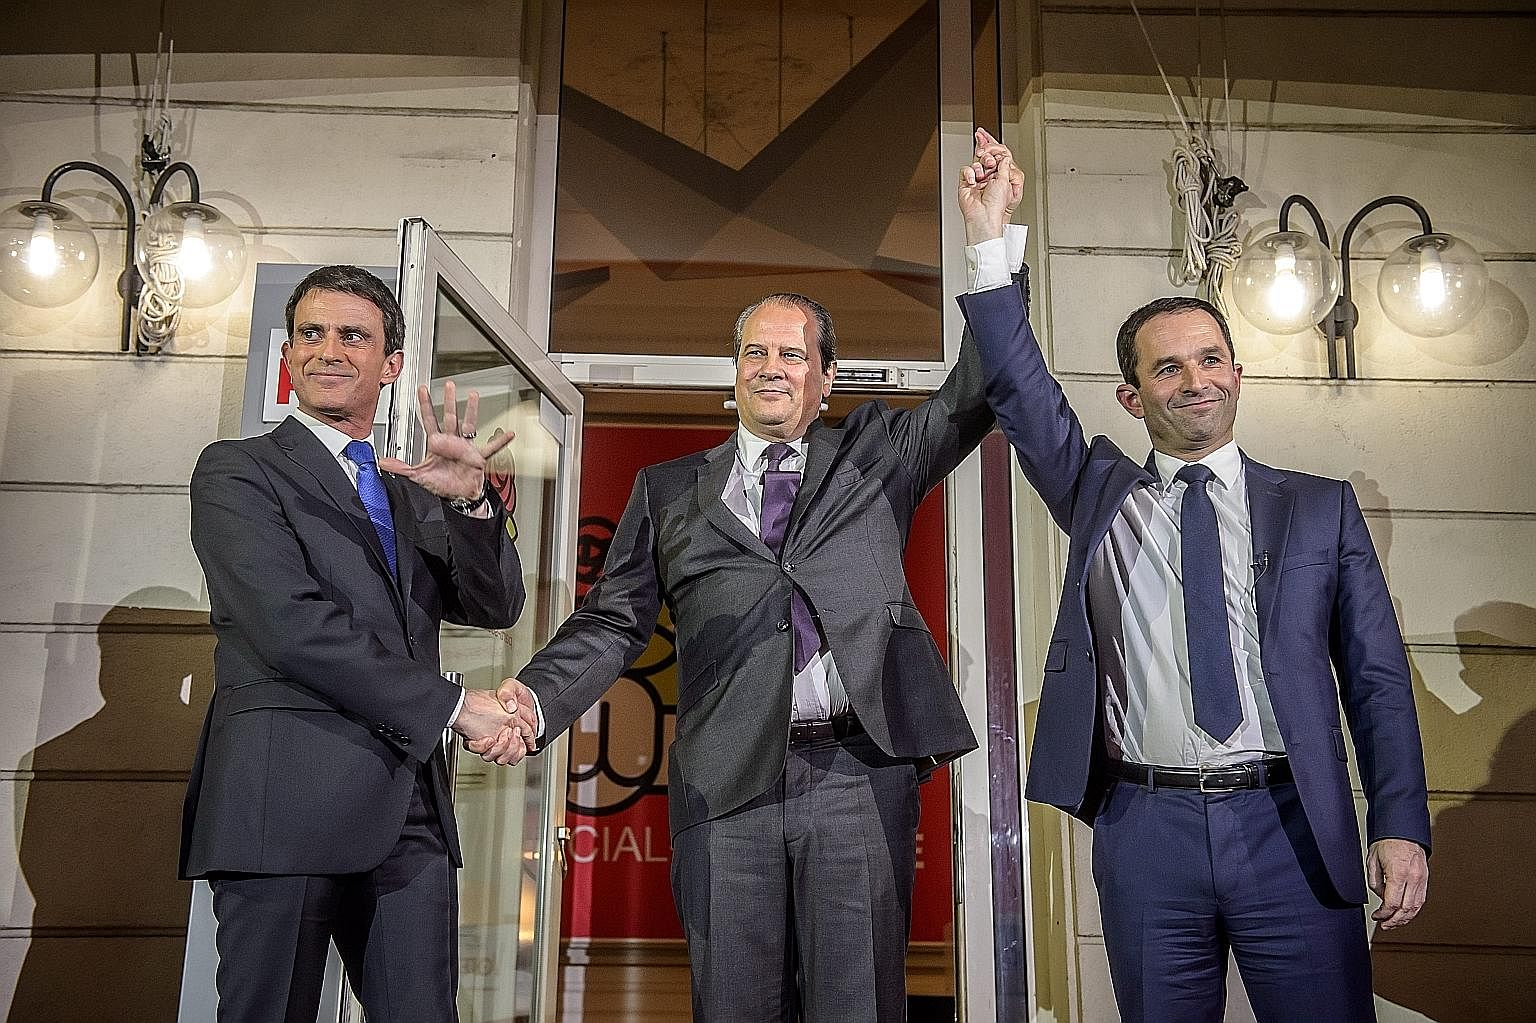 French Socialist party secretary Jean-Christophe Cambadelis (centre) flanked by Mr Benoit Hamon (far right), the winner of the second round of the party's primaries for the 2017 presidential election, and his opponent Manuel Valls on Sunday.